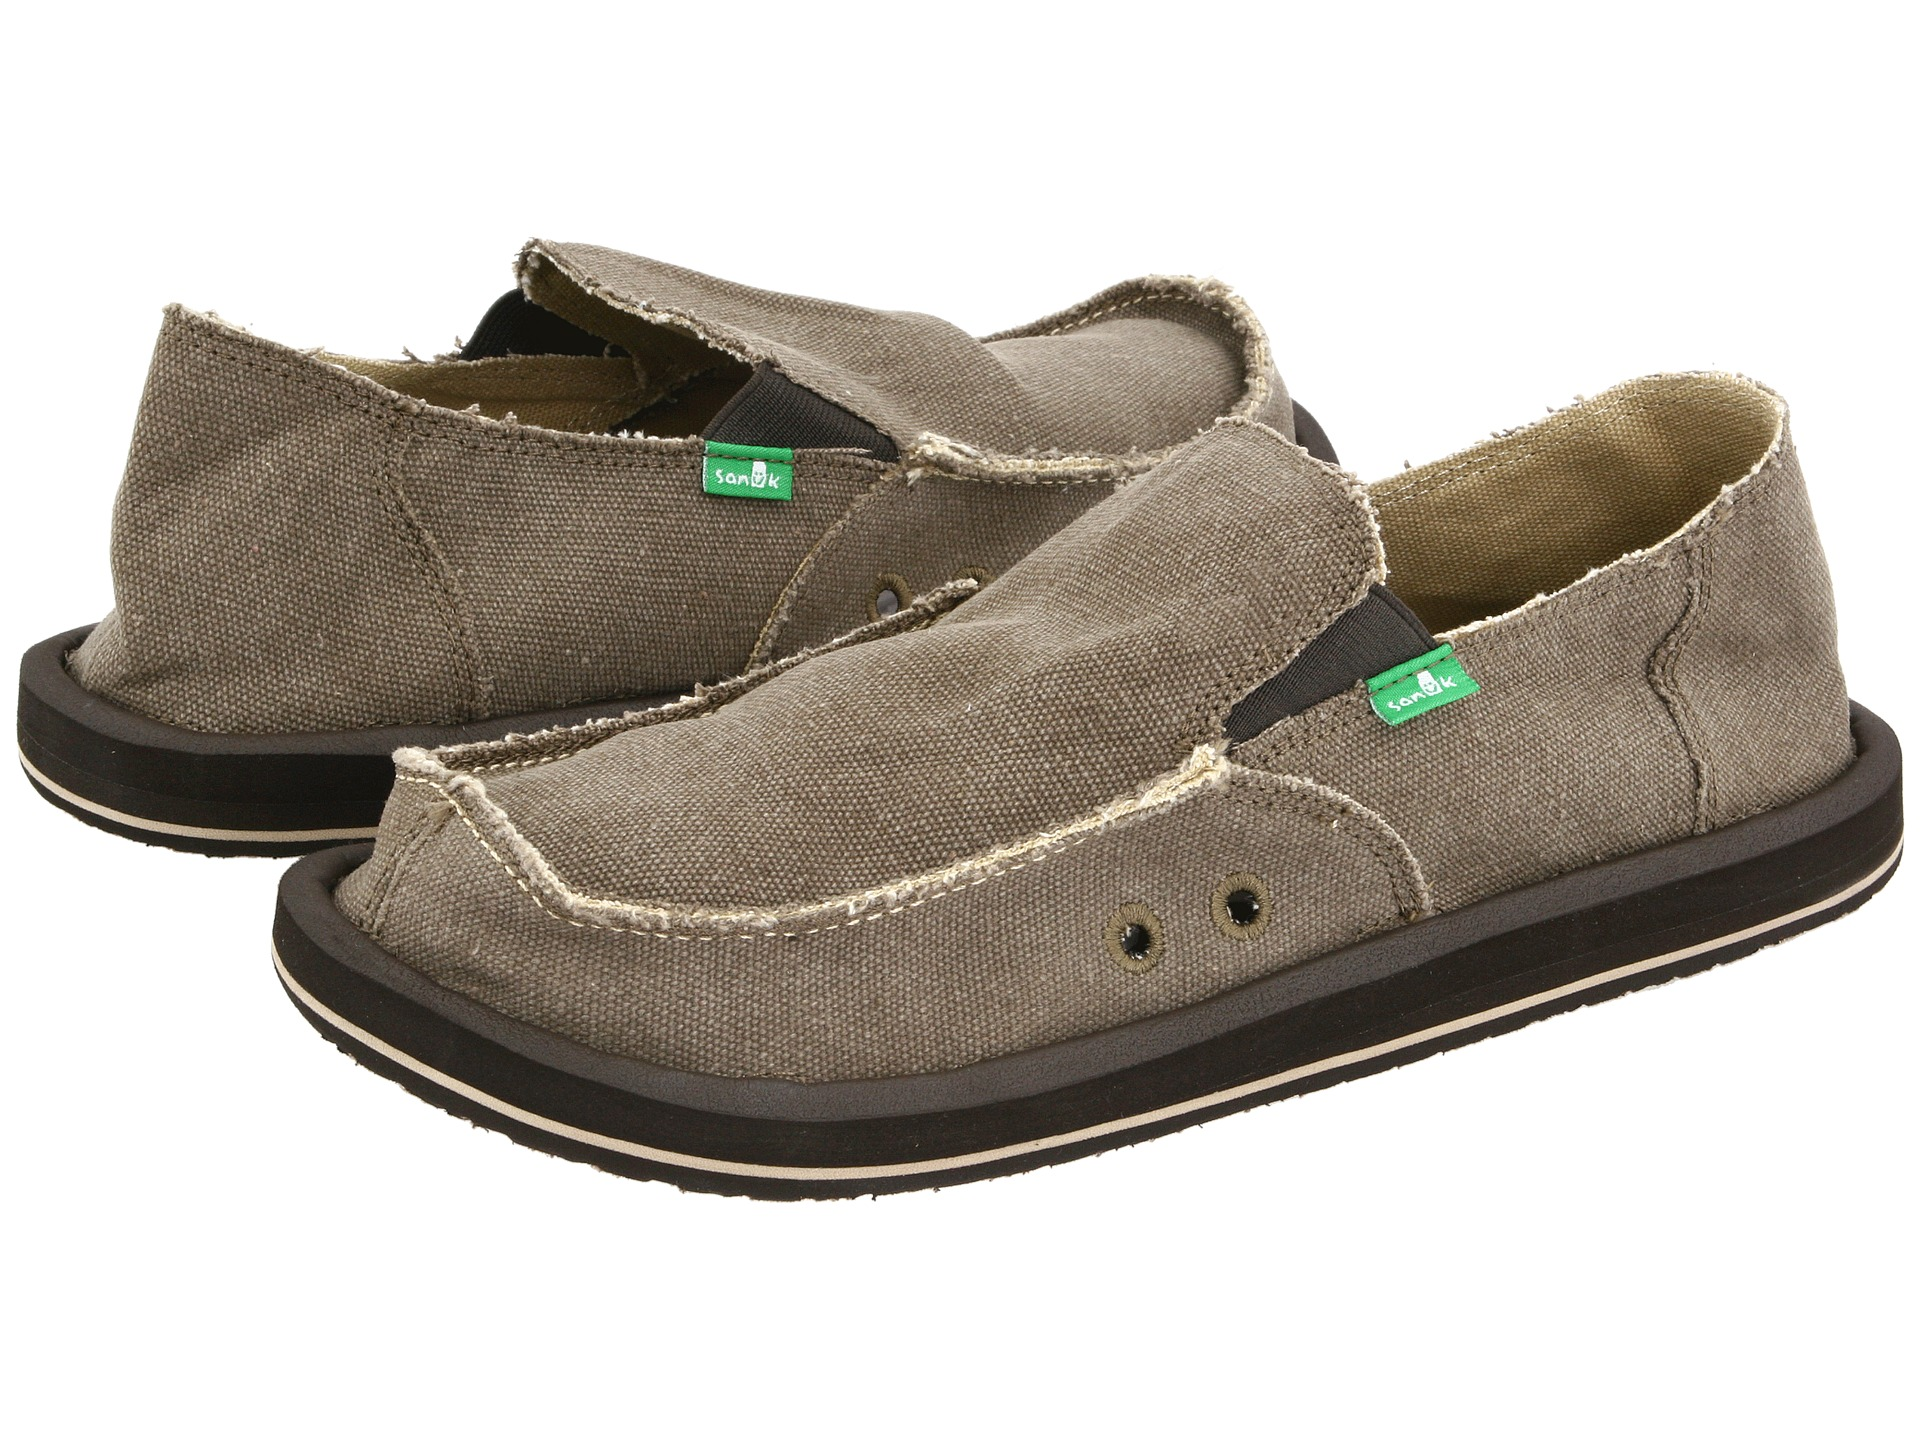 Buy Sanuk Women's Donna Hemp Flat and other Loafers & Slip-Ons at softplaynet.ga Our wide selection is eligible for free shipping and free returns.